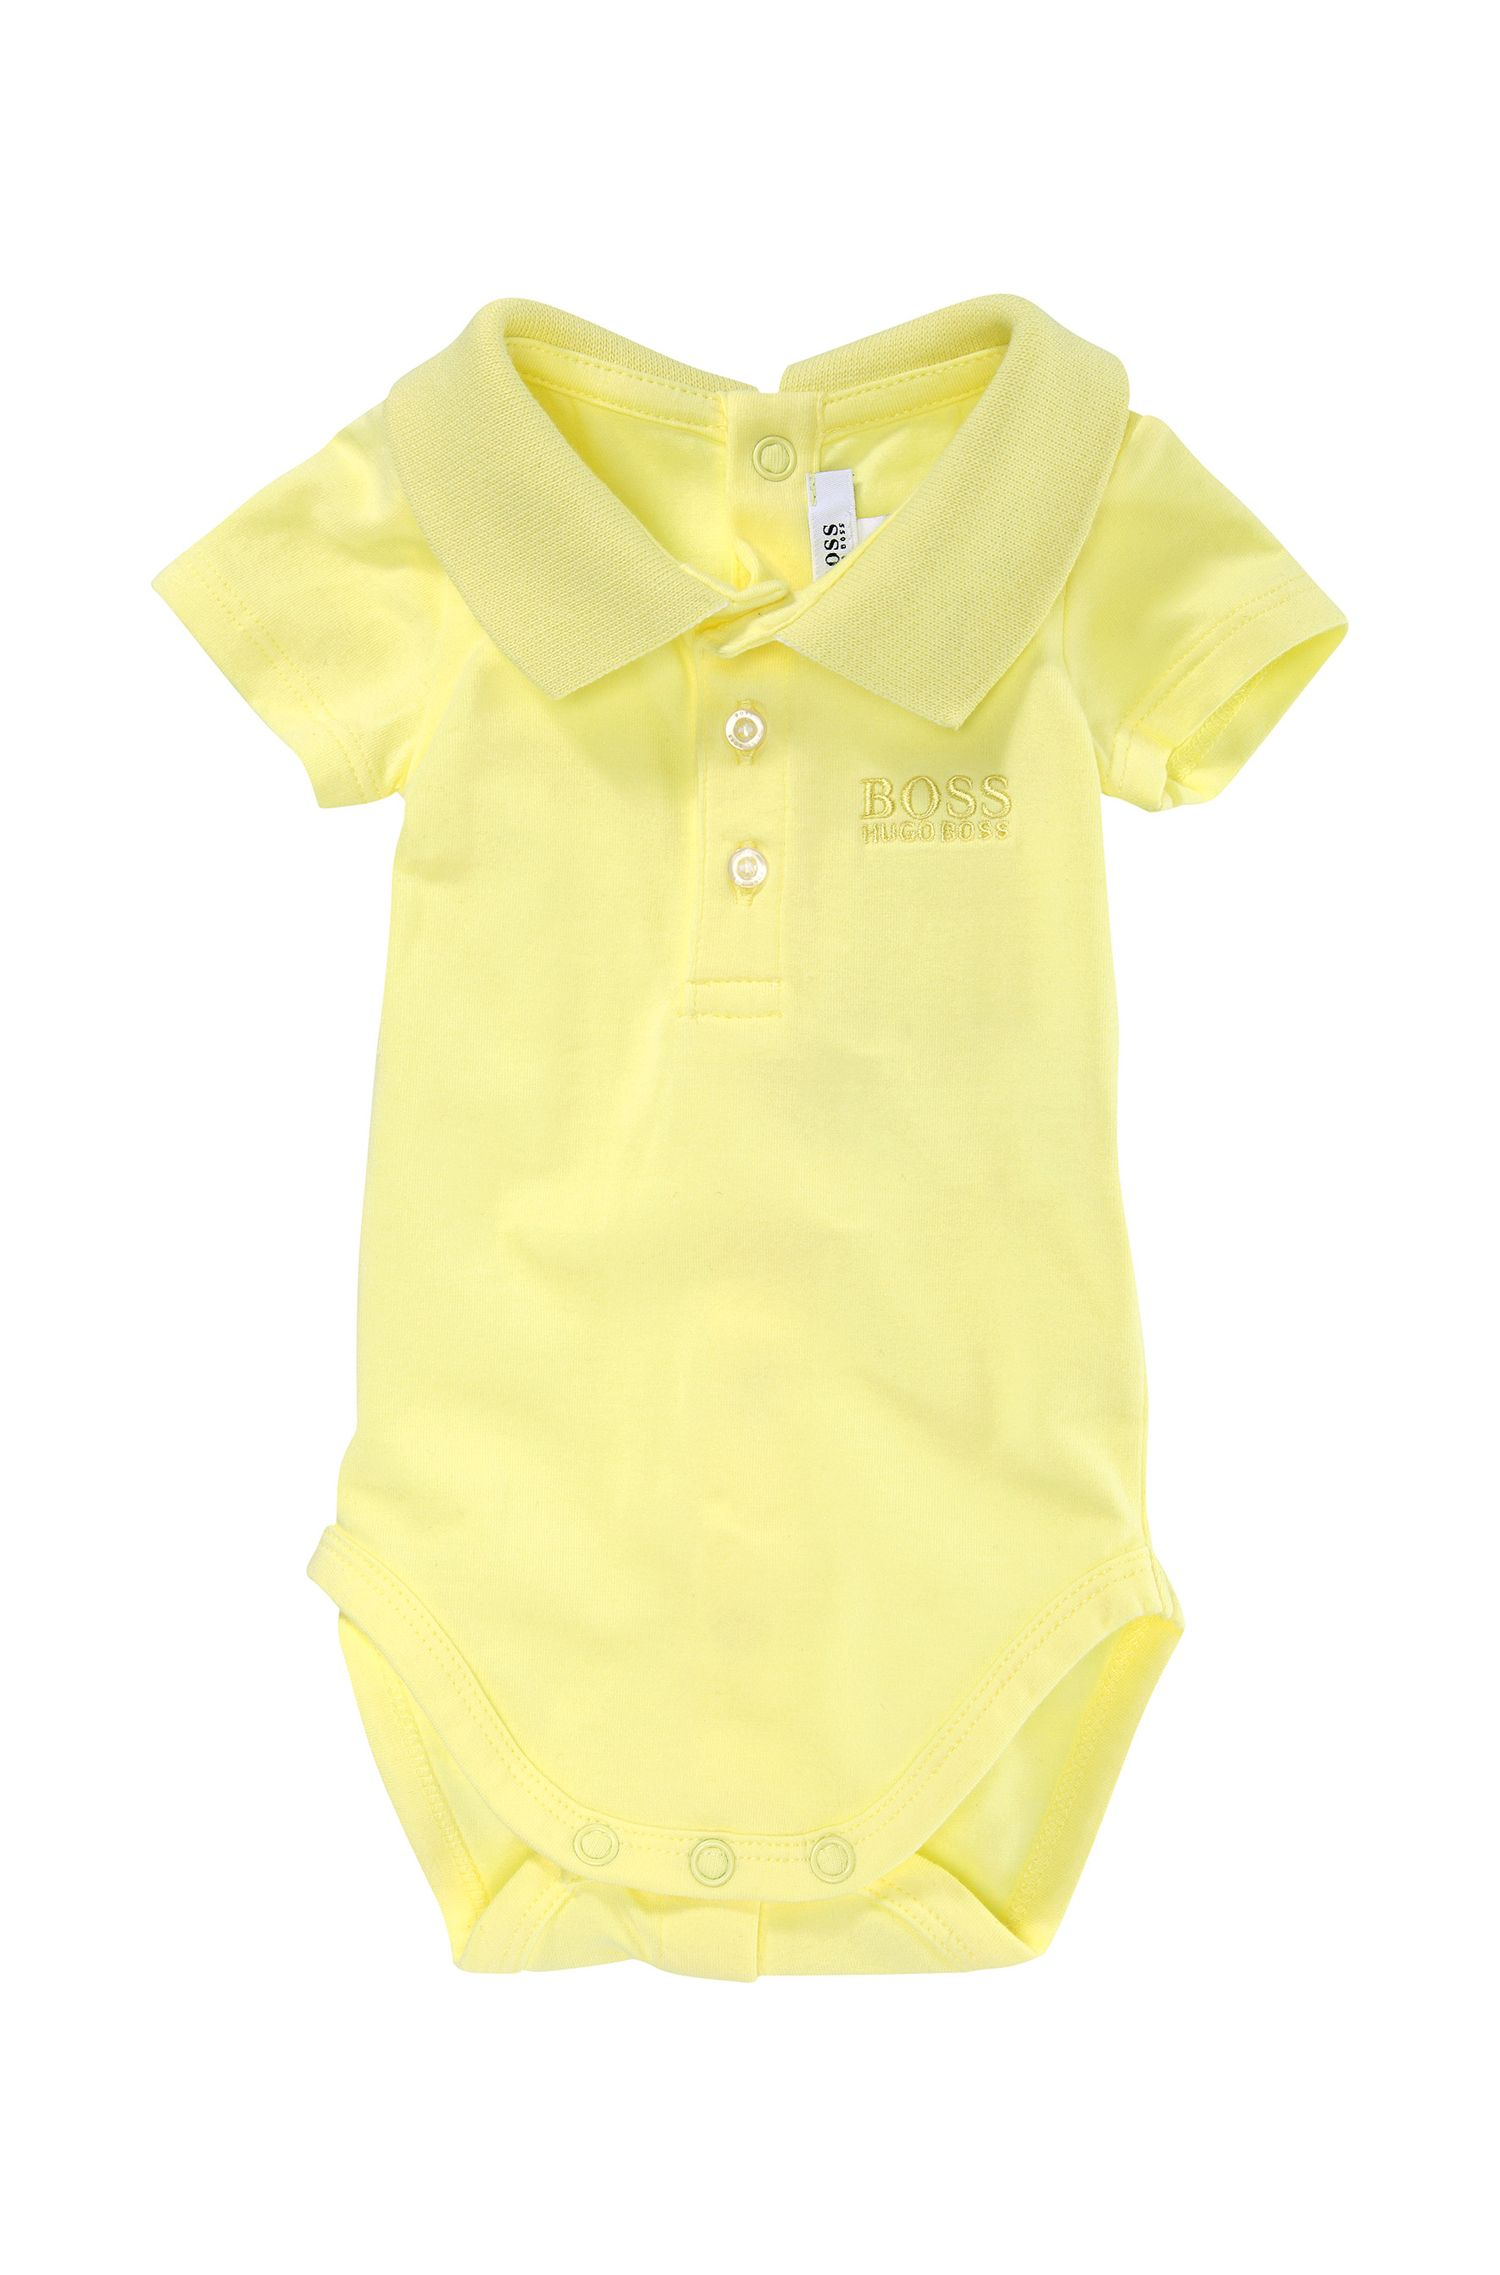 'J97066' | Infant Cotton Jersey Polo Onesie